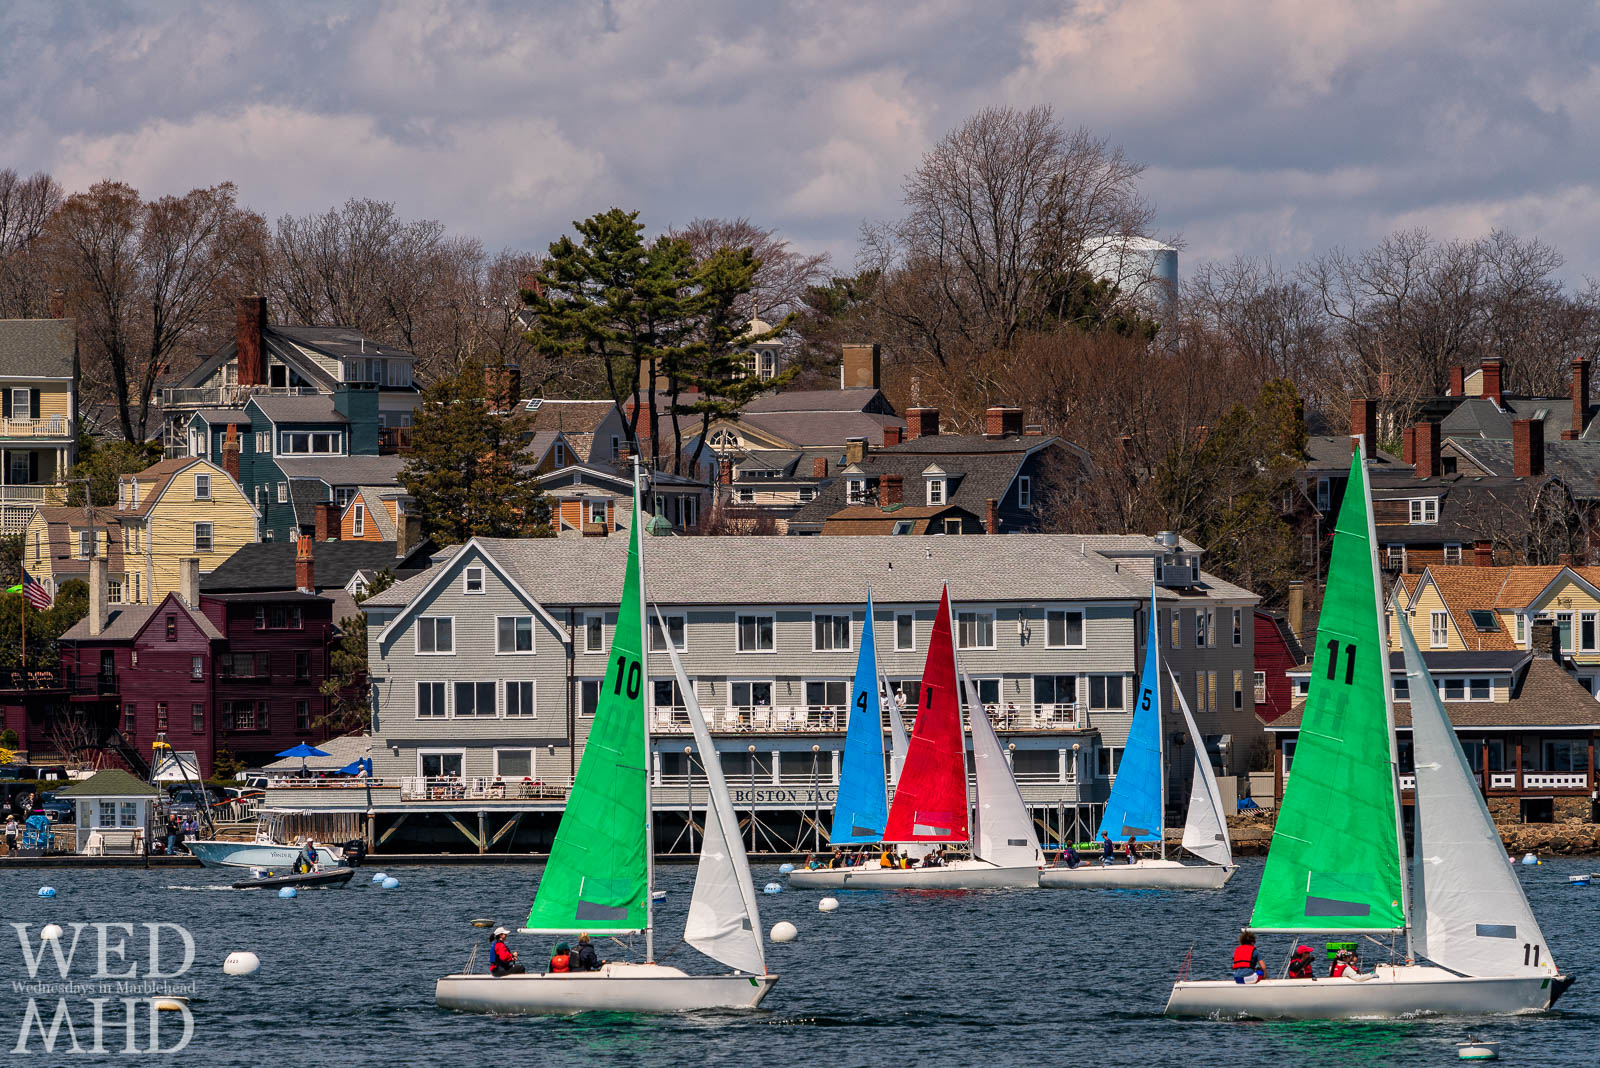 The Jackson Cup race takes place in front of the Boston Yacht Club with sailboats crisscrossing through Marblehead Harbor.